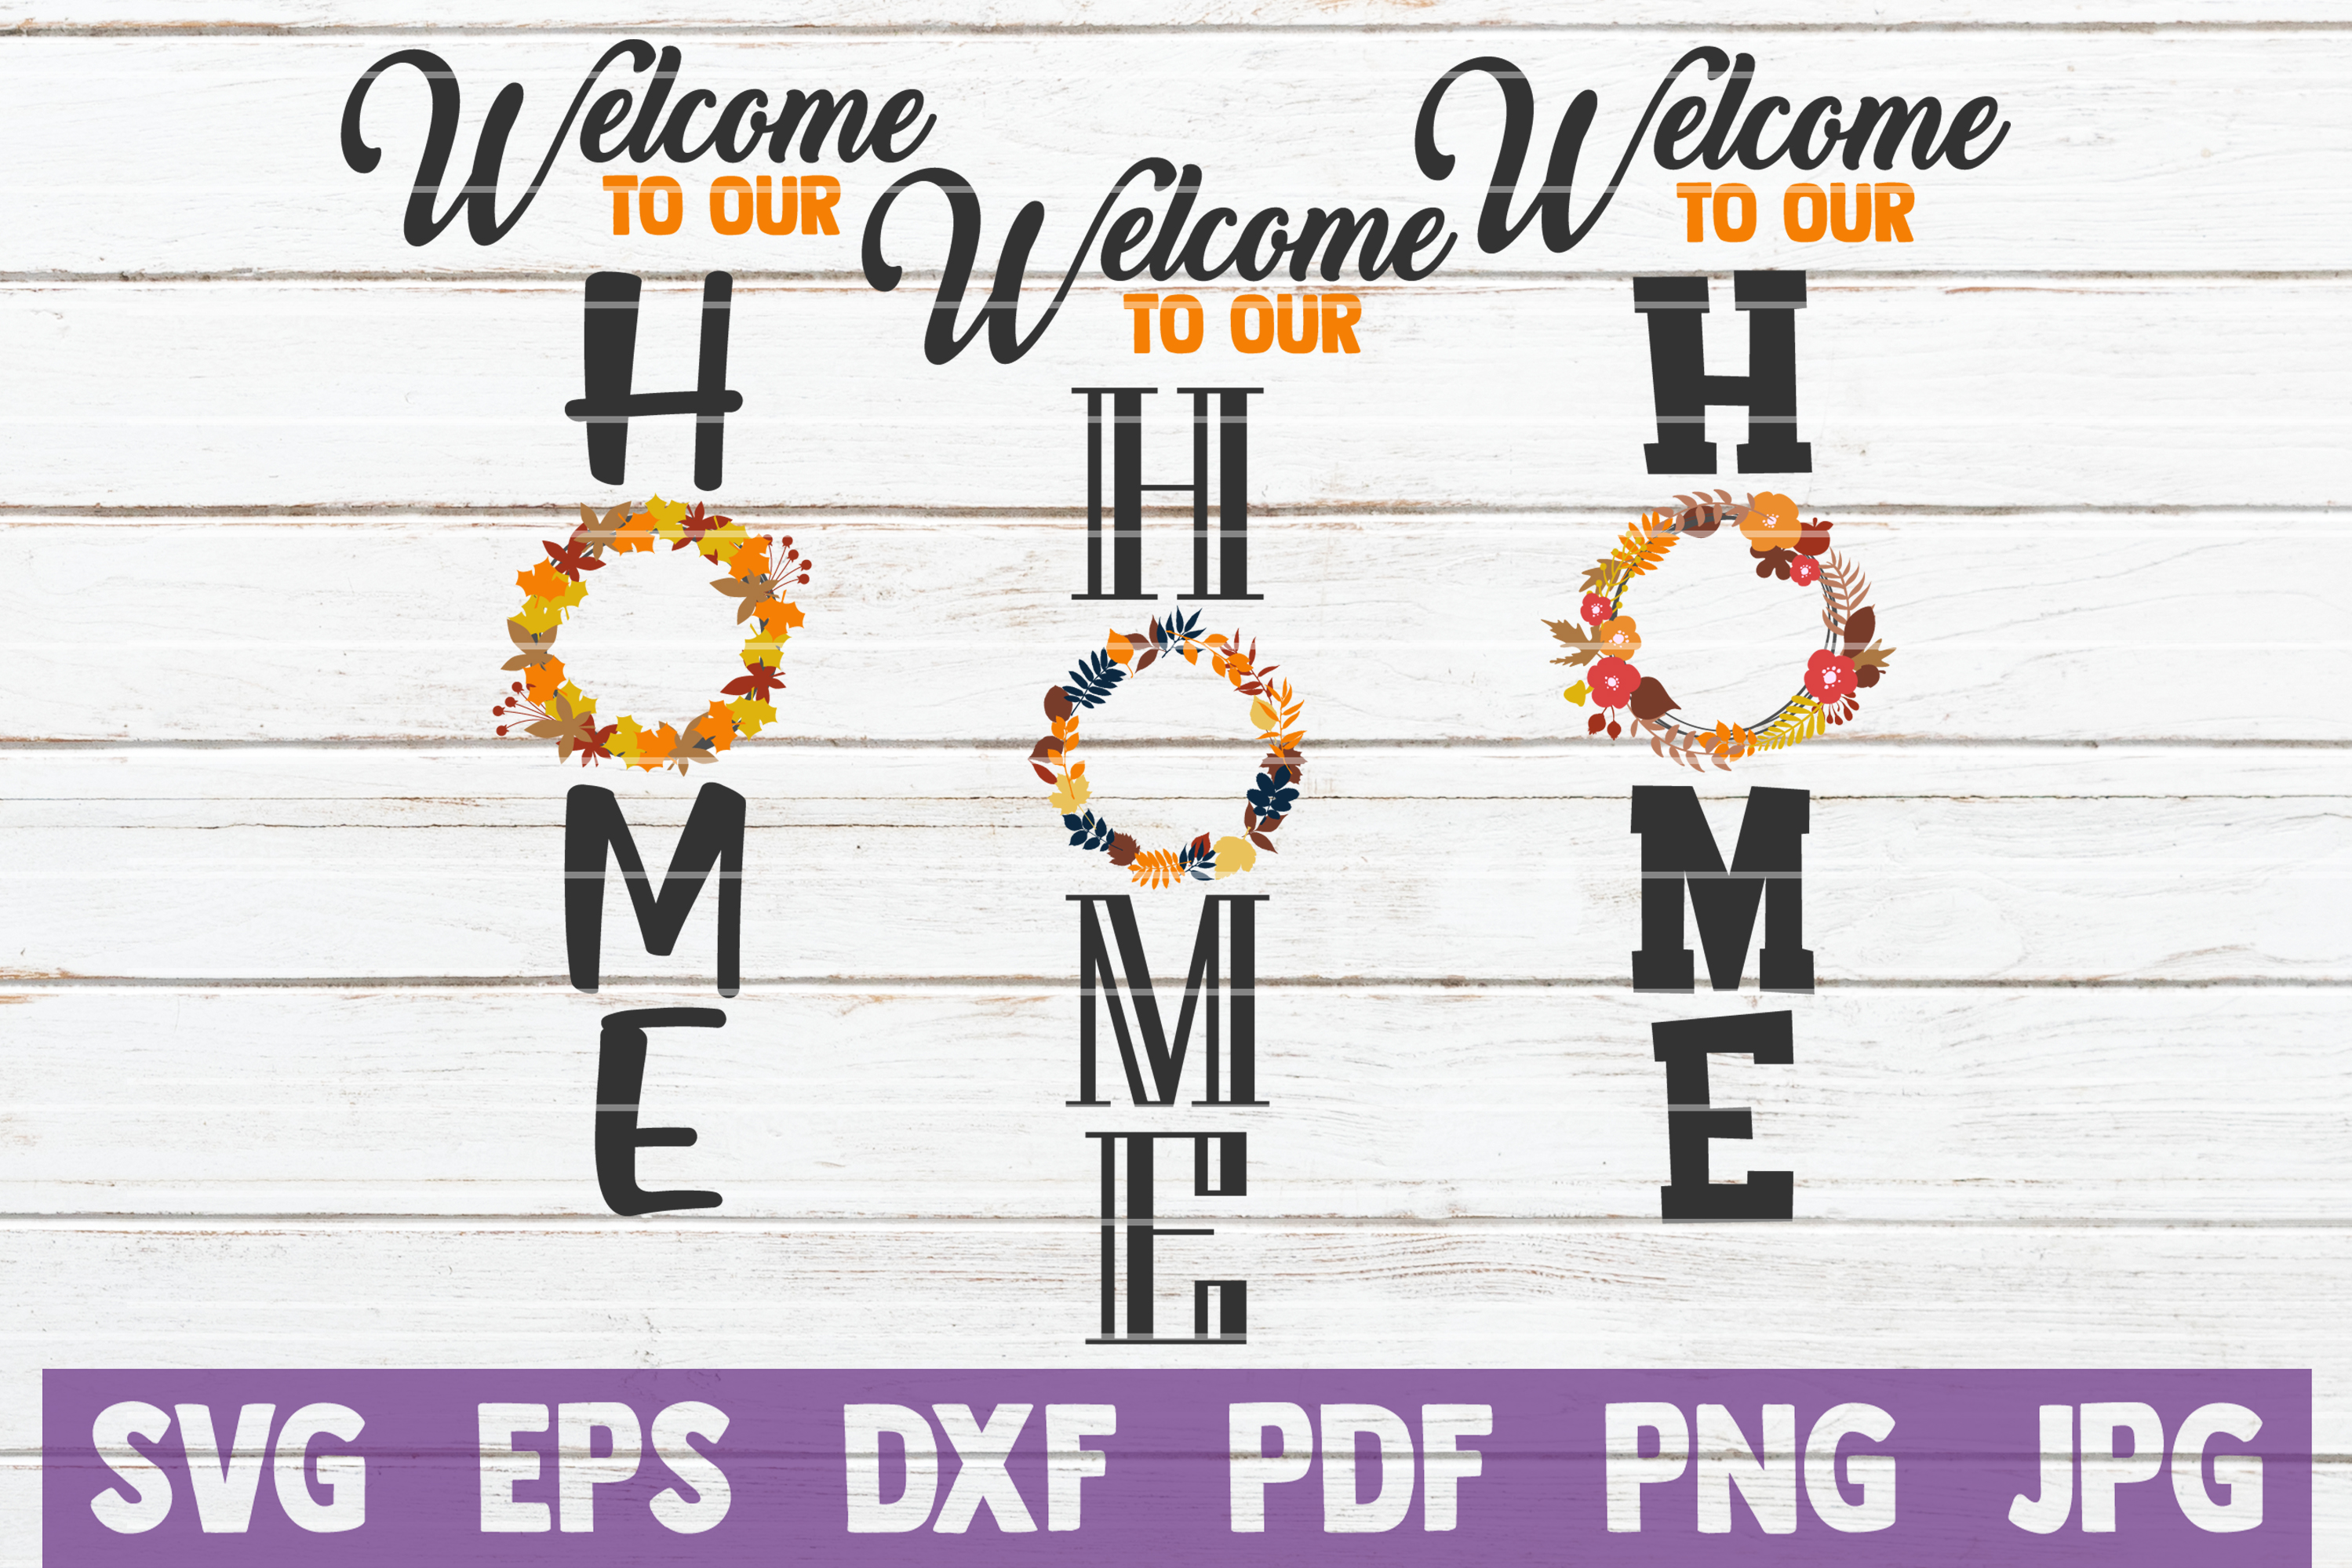 Welcome To Our Home SVG Cut File example image 1